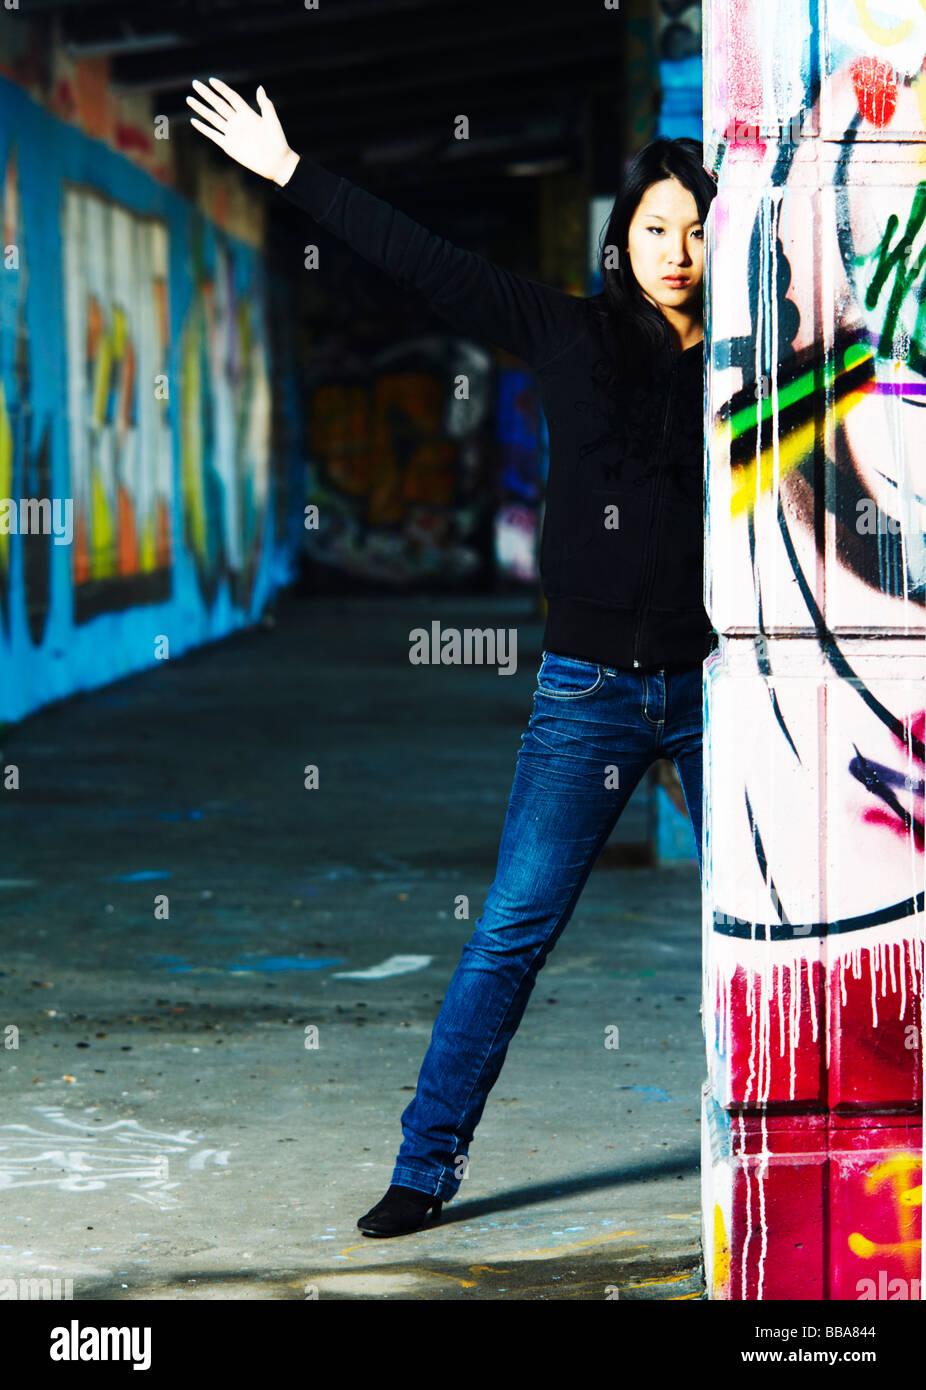 Young Asian girl in rapper pose between walls with graffiti - Stock Image